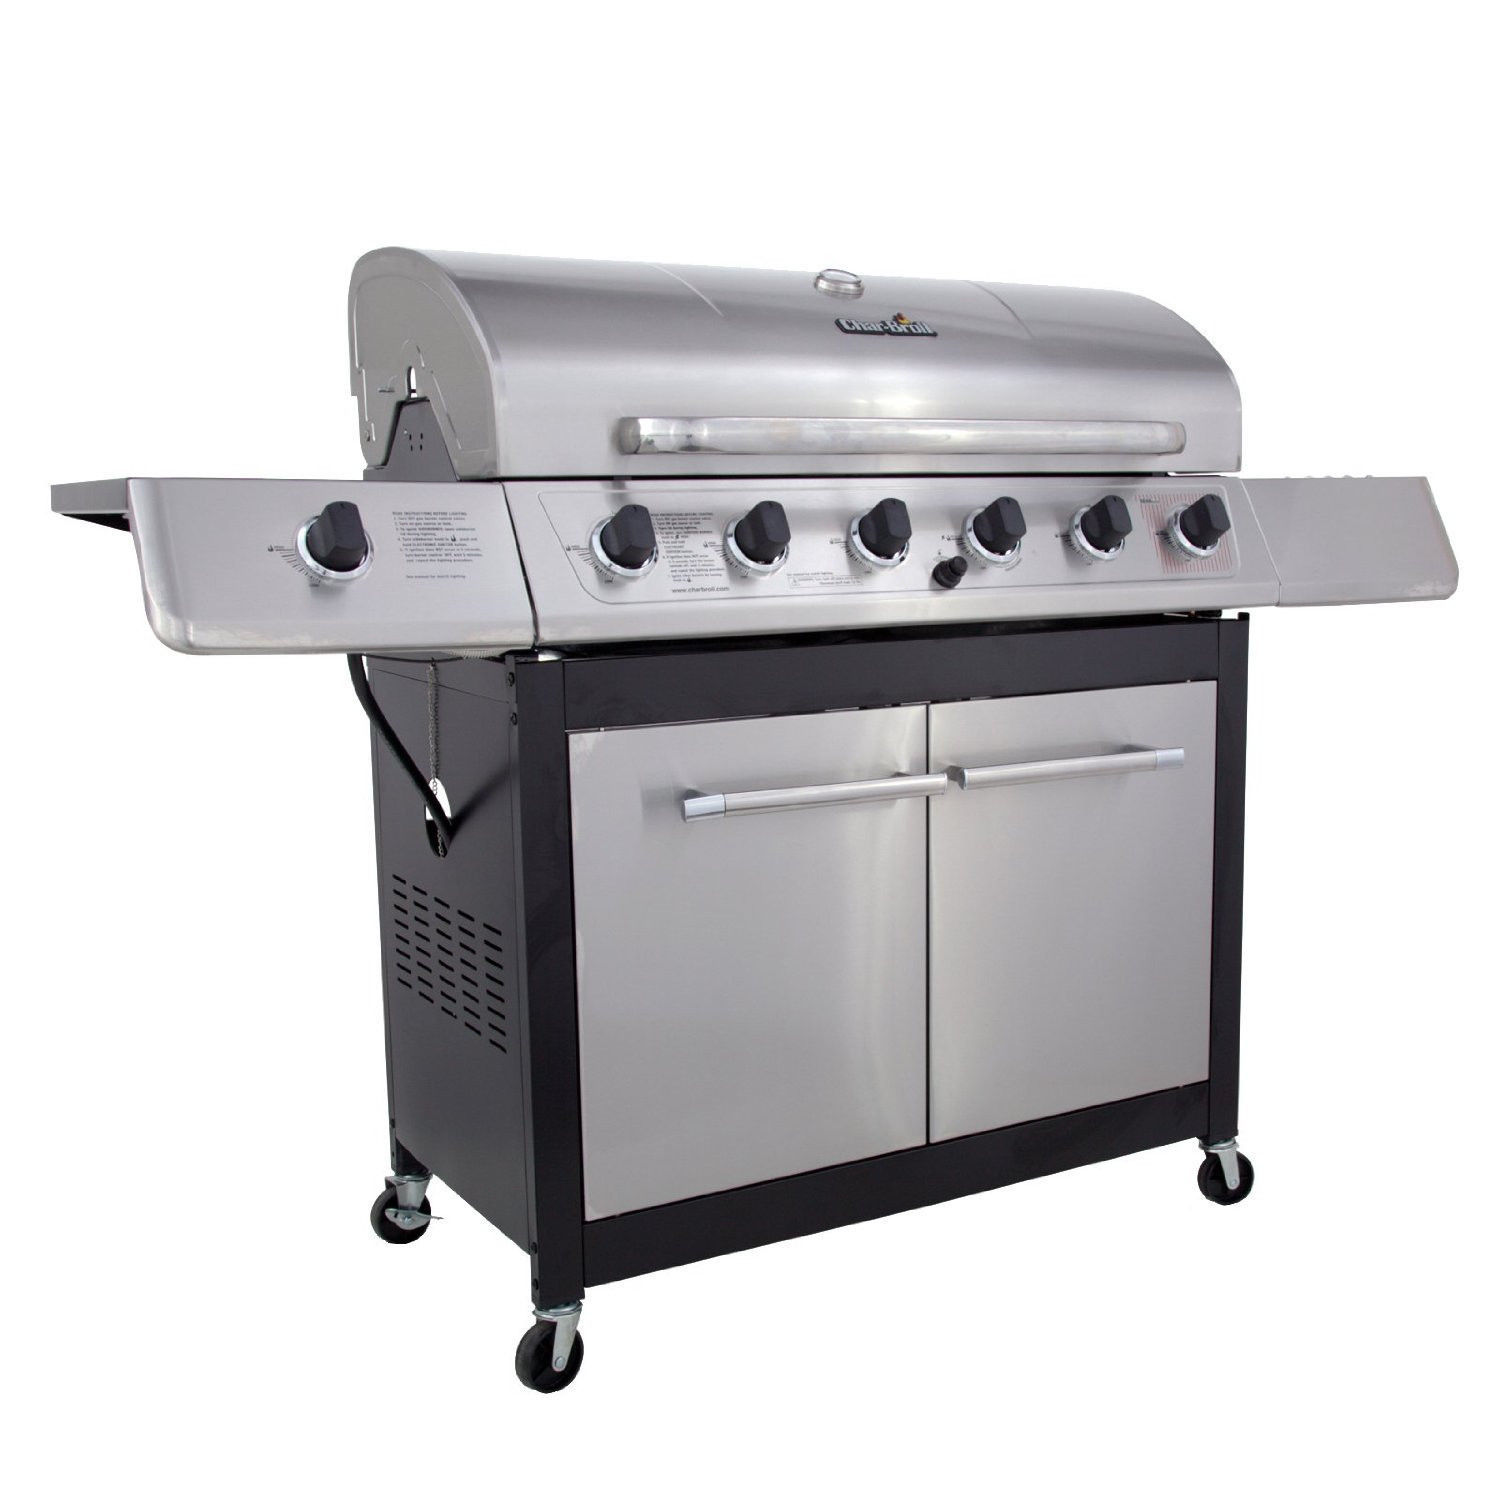 Stainless Steel CharBroil 6 Burner Gas Grill Side Burner BBQ Food Party Patio